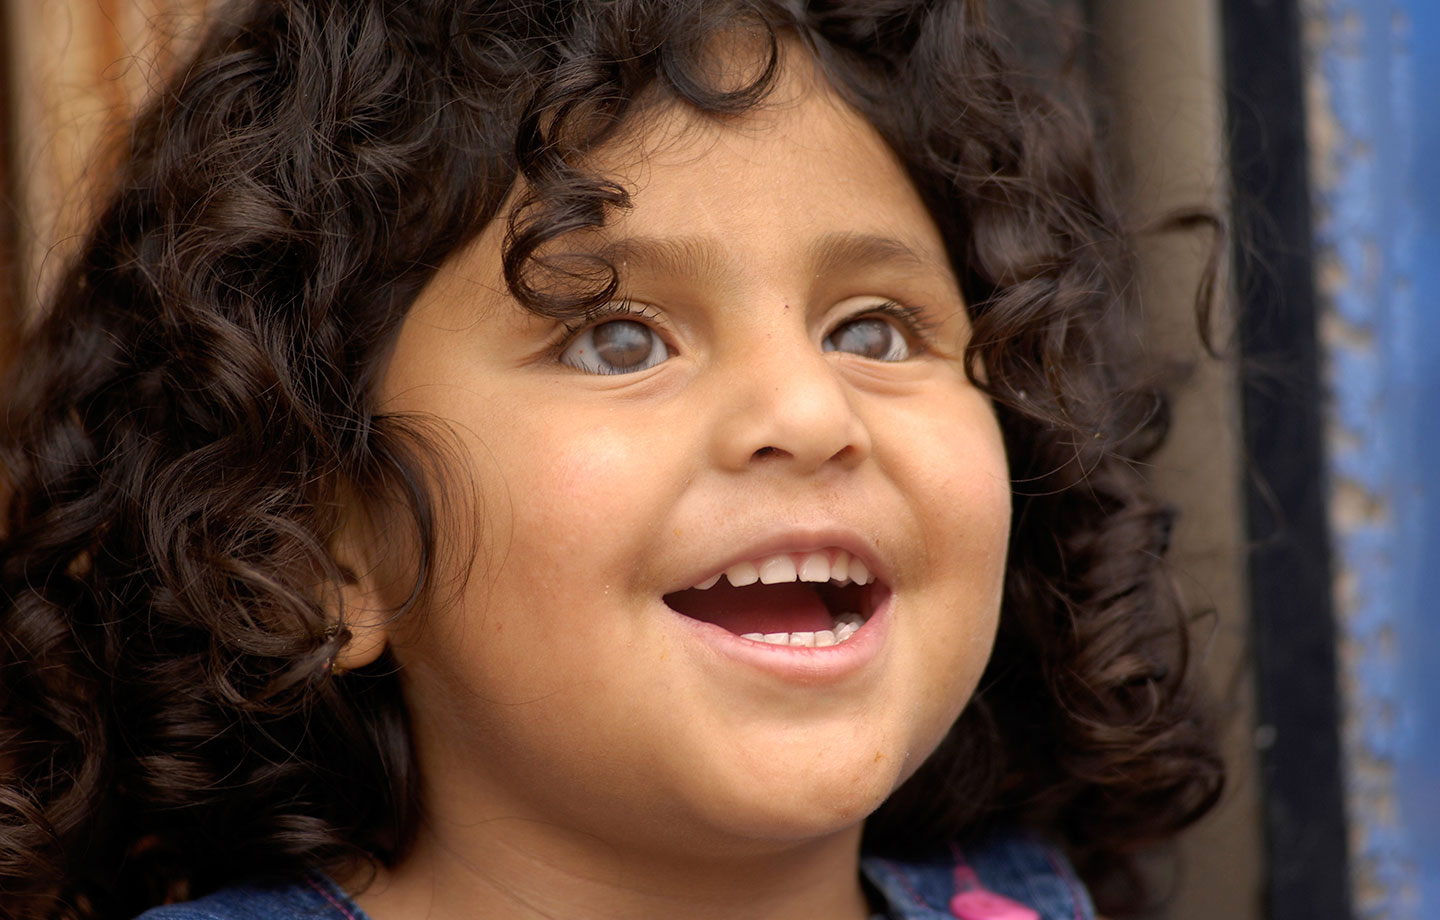 Compassion helps a blind girl from Ecuador get prosthetic eyes